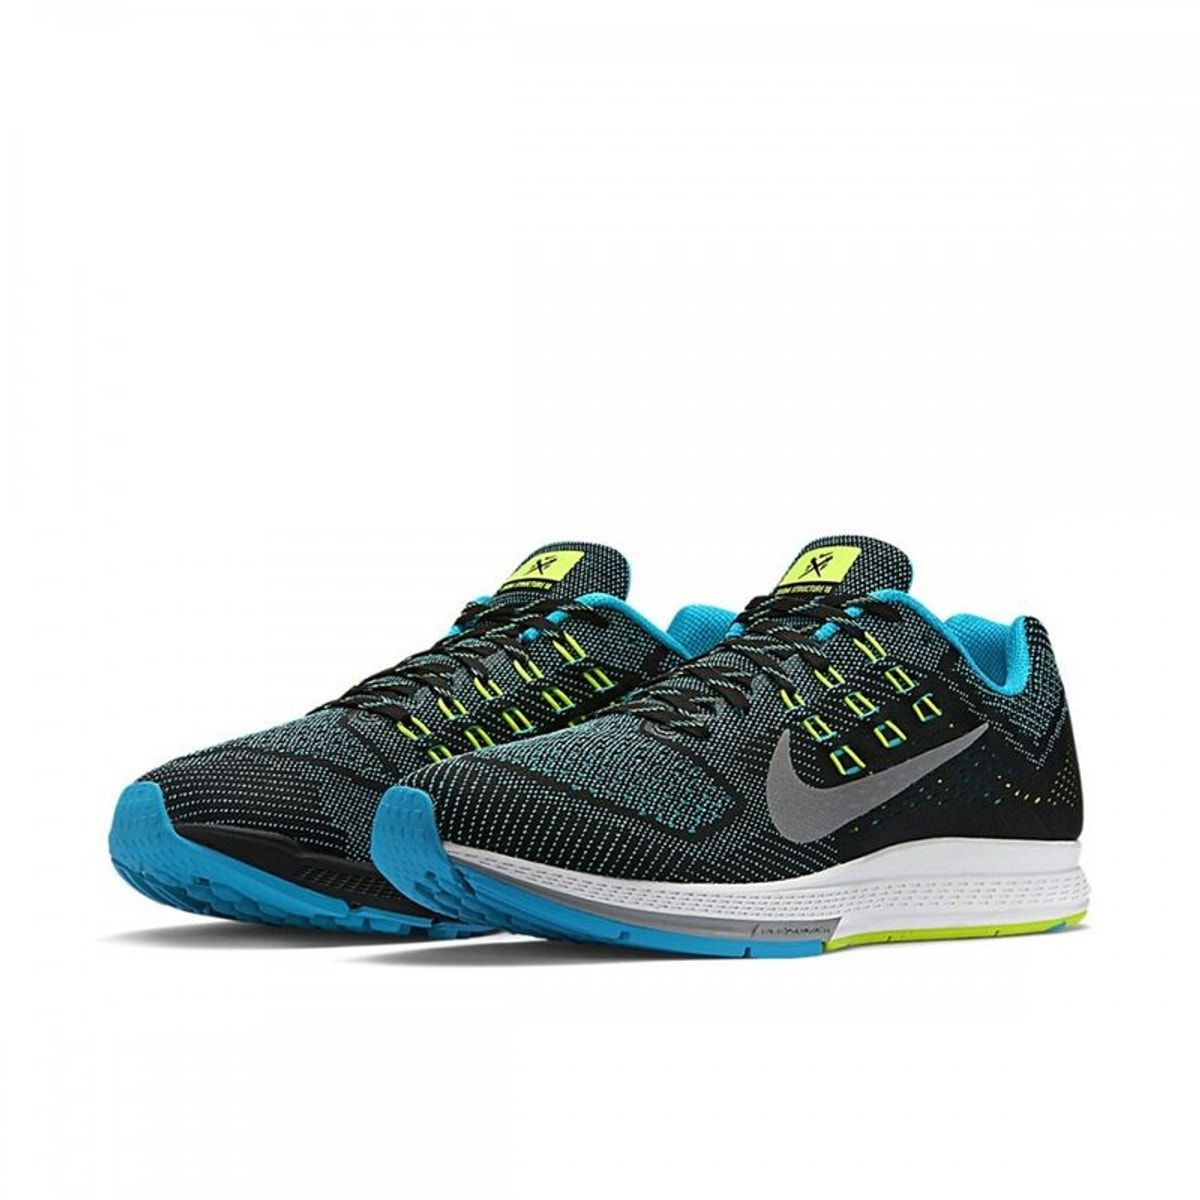 Nike air zoom structure 18 | La Redoute